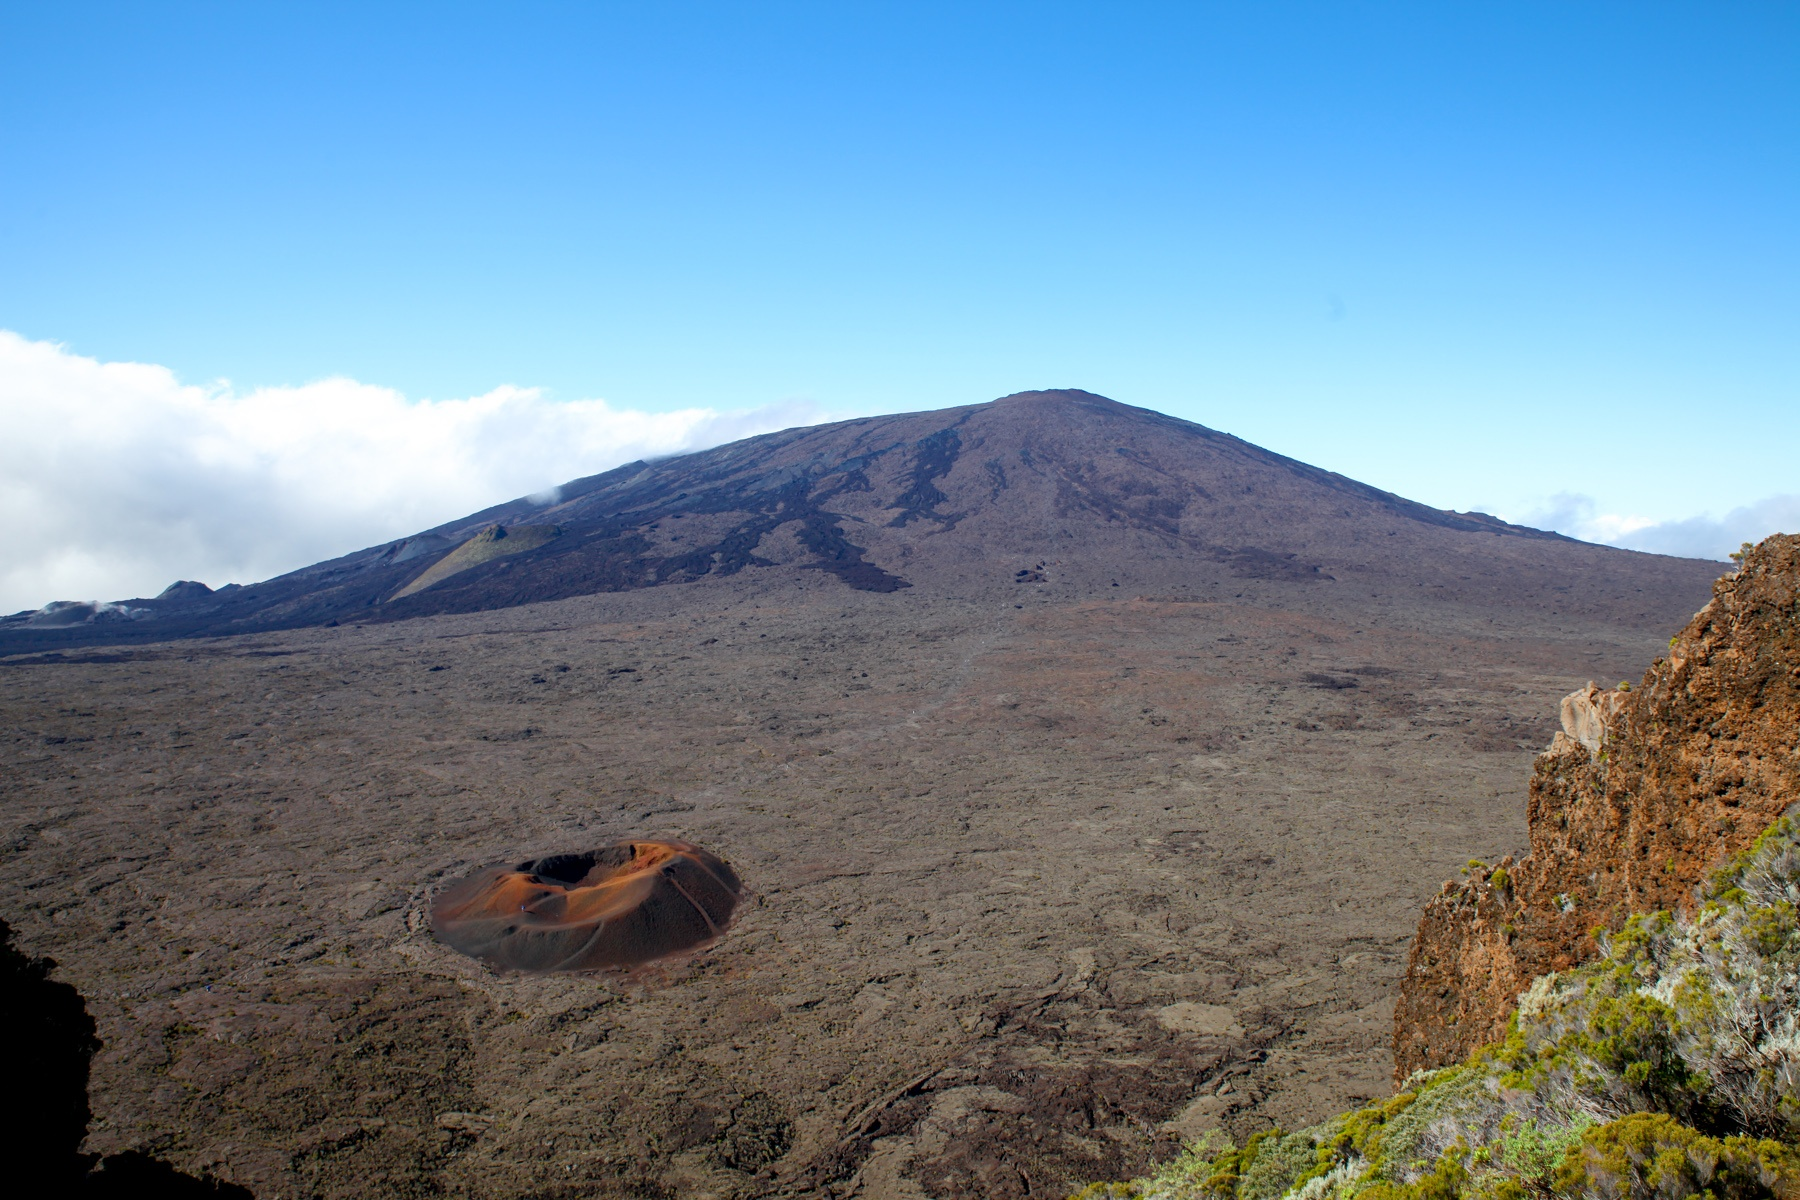 La Réunion Highlights: Krater Wanderung am Piton de la Fournaise